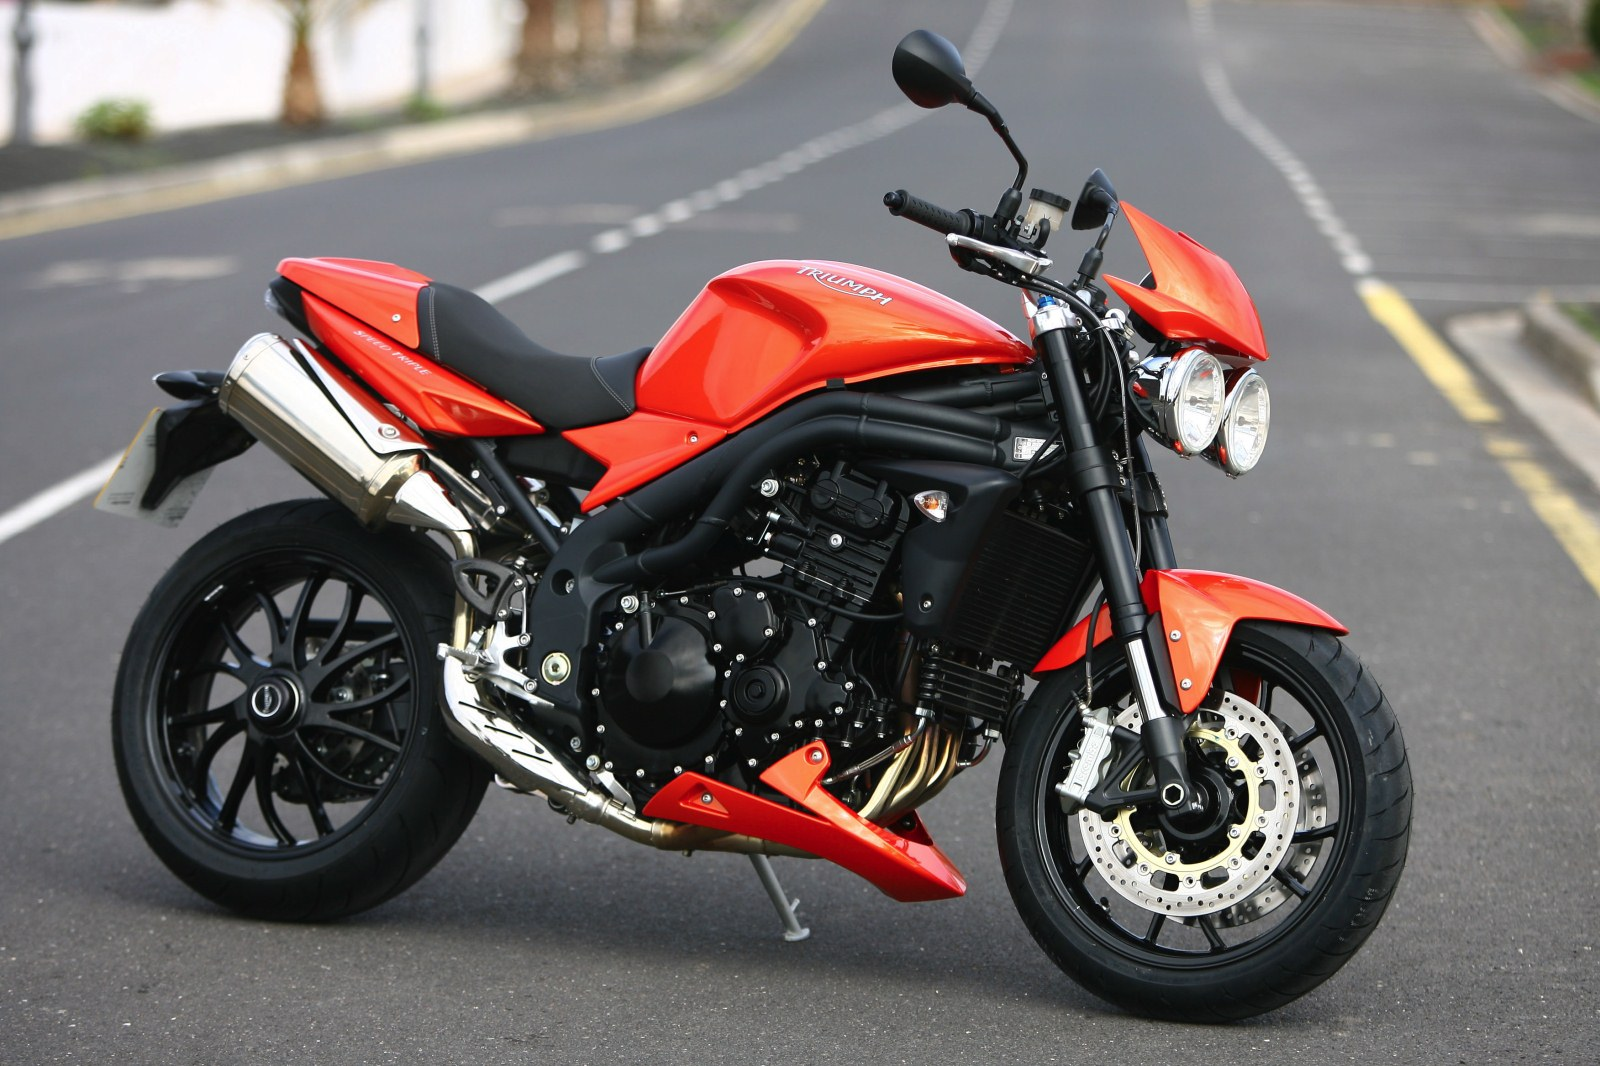 Triumph Speed Triple 1050 2011 images #126629